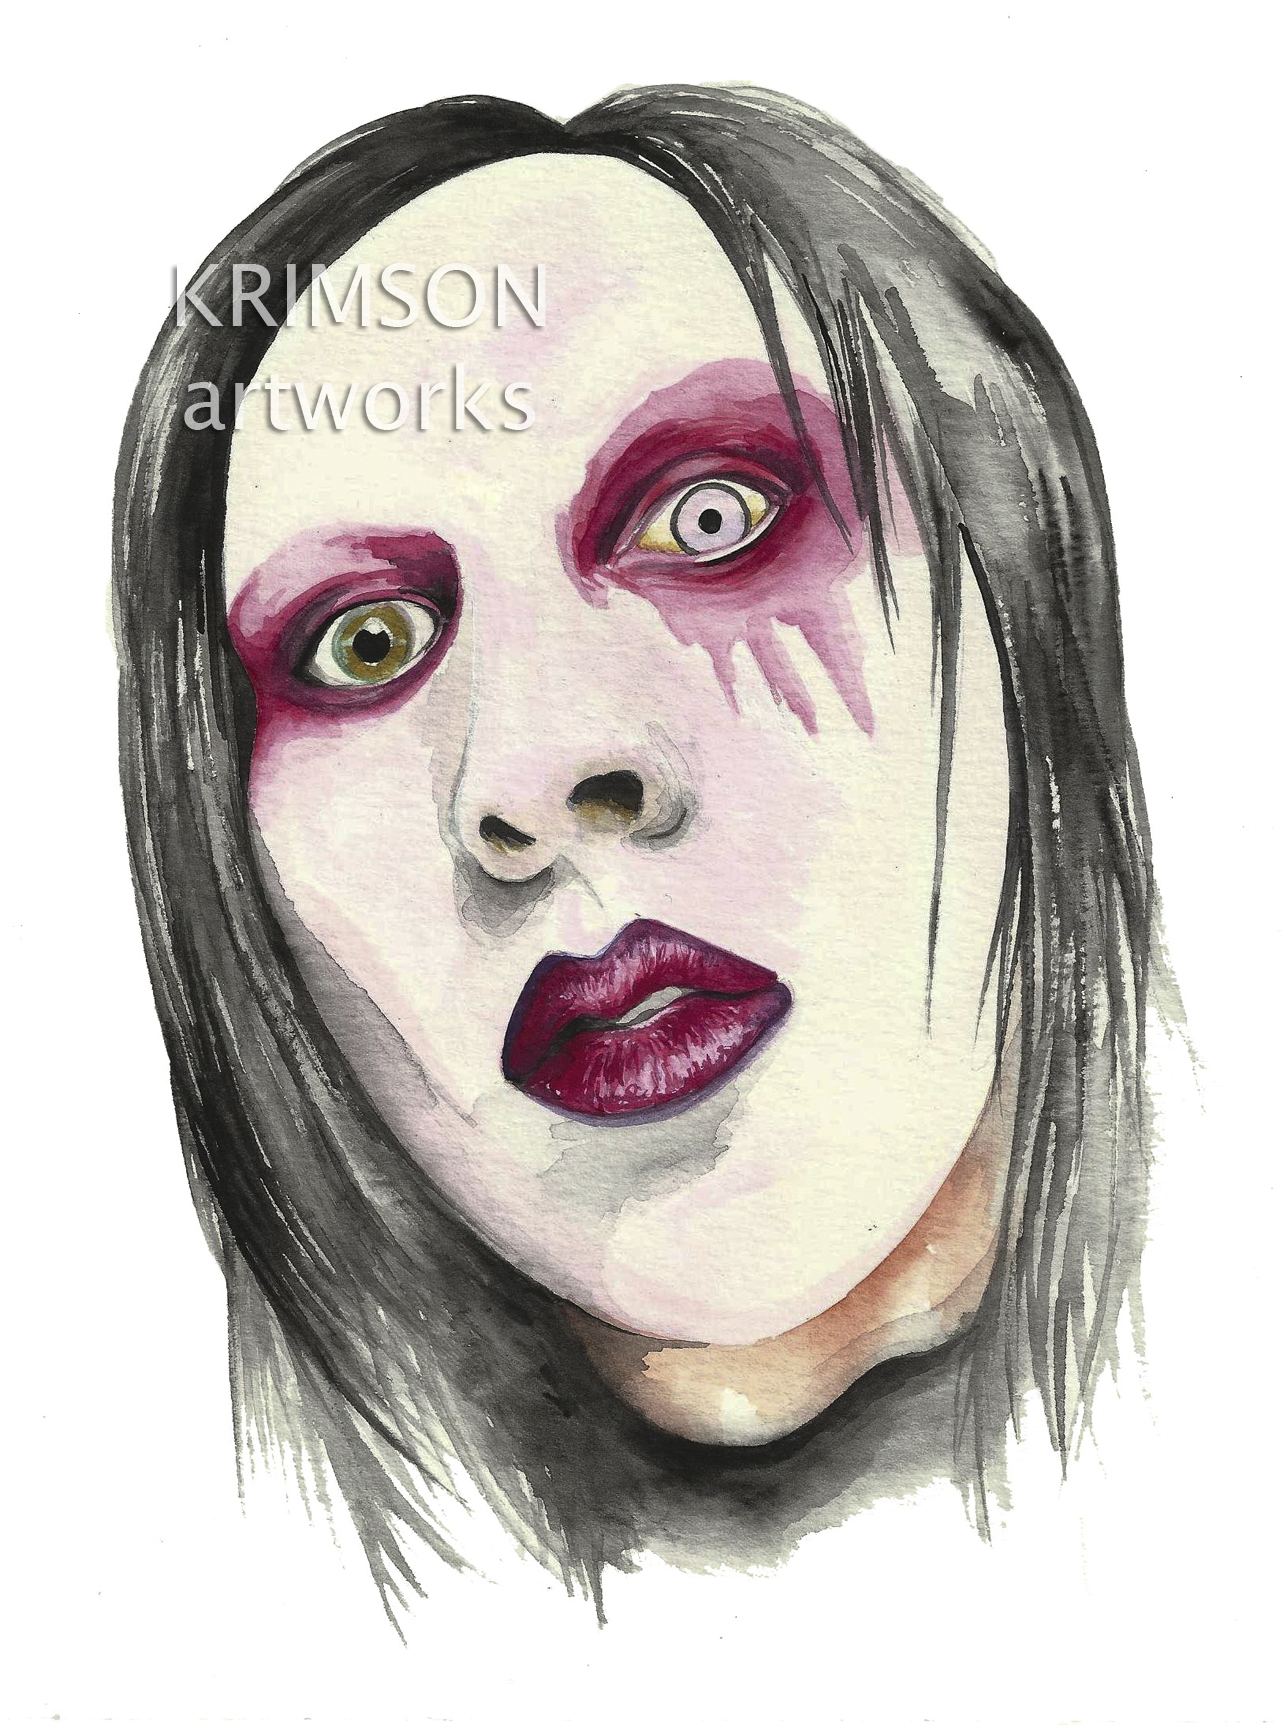 krimson artworks marilyn manson portrait